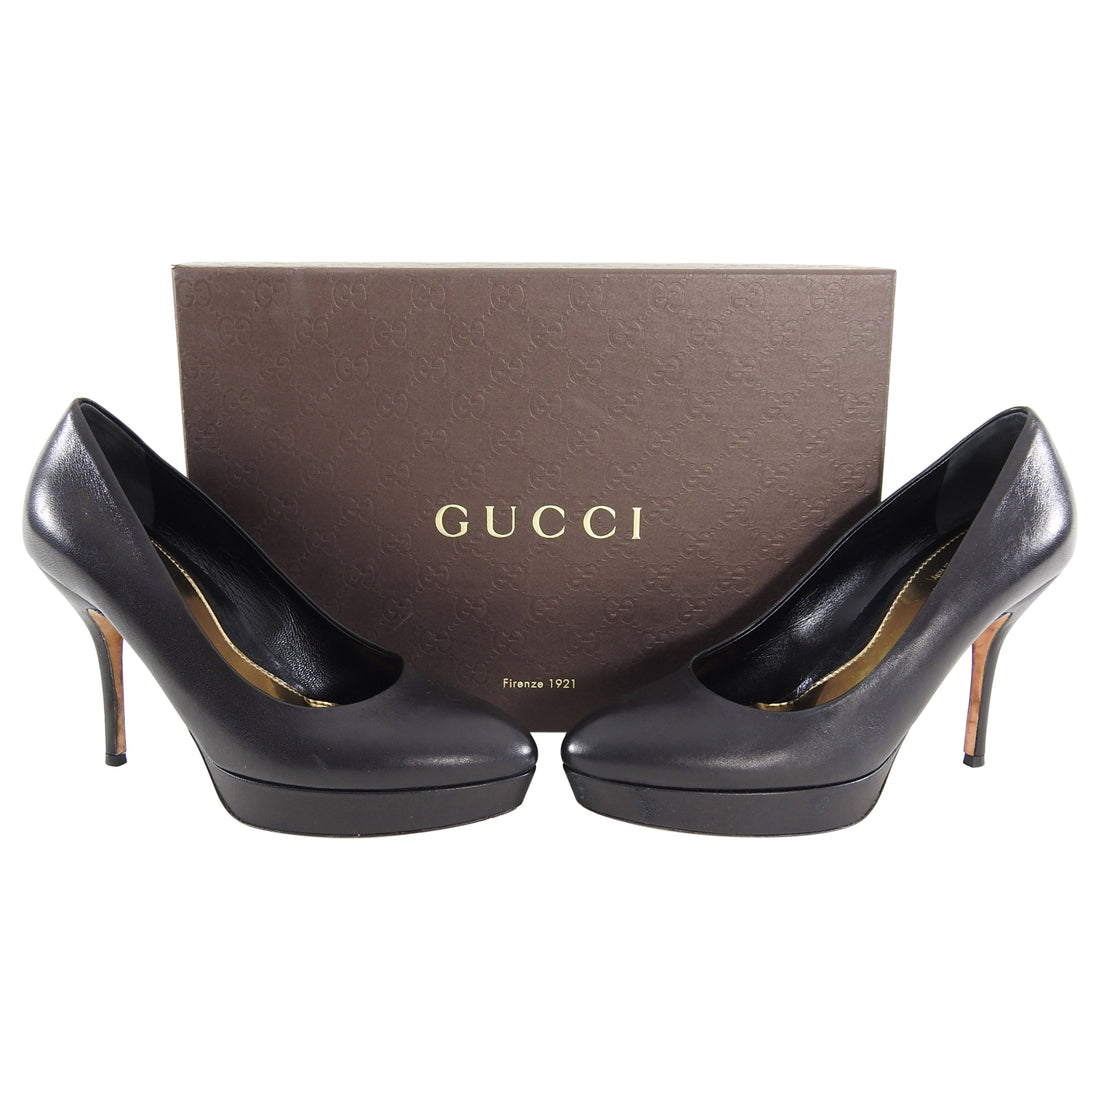 Gucci Black Leather Platform Pumps Heels - 6